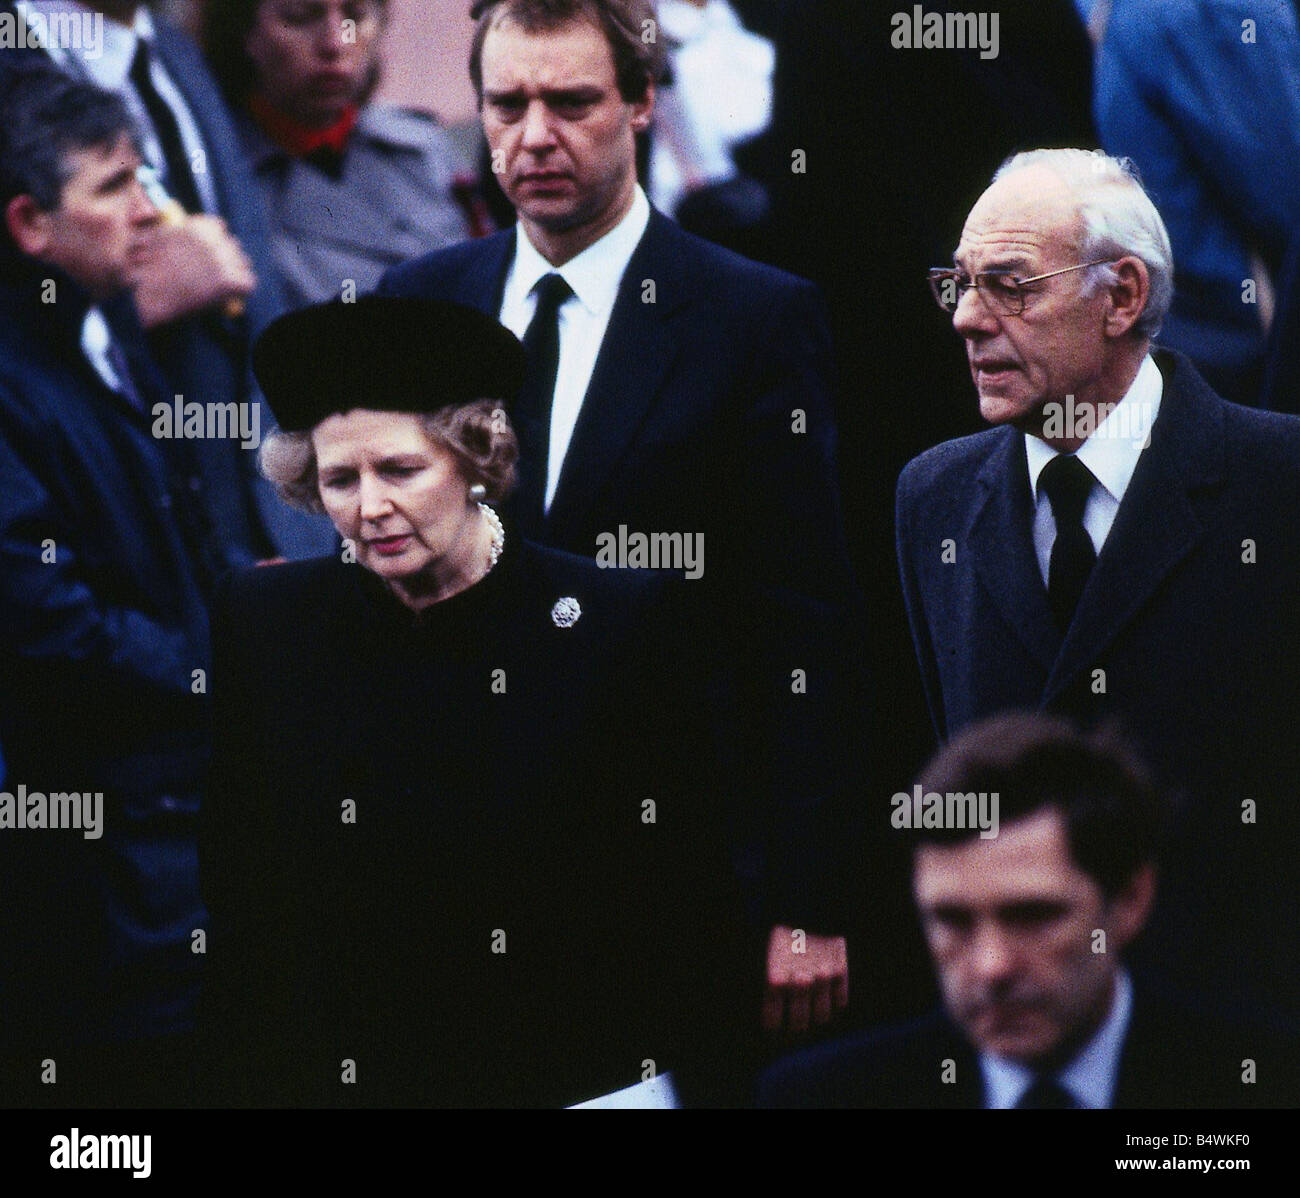 Denis Thatcher Funeral High Resolution Stock Photography And Images Alamy